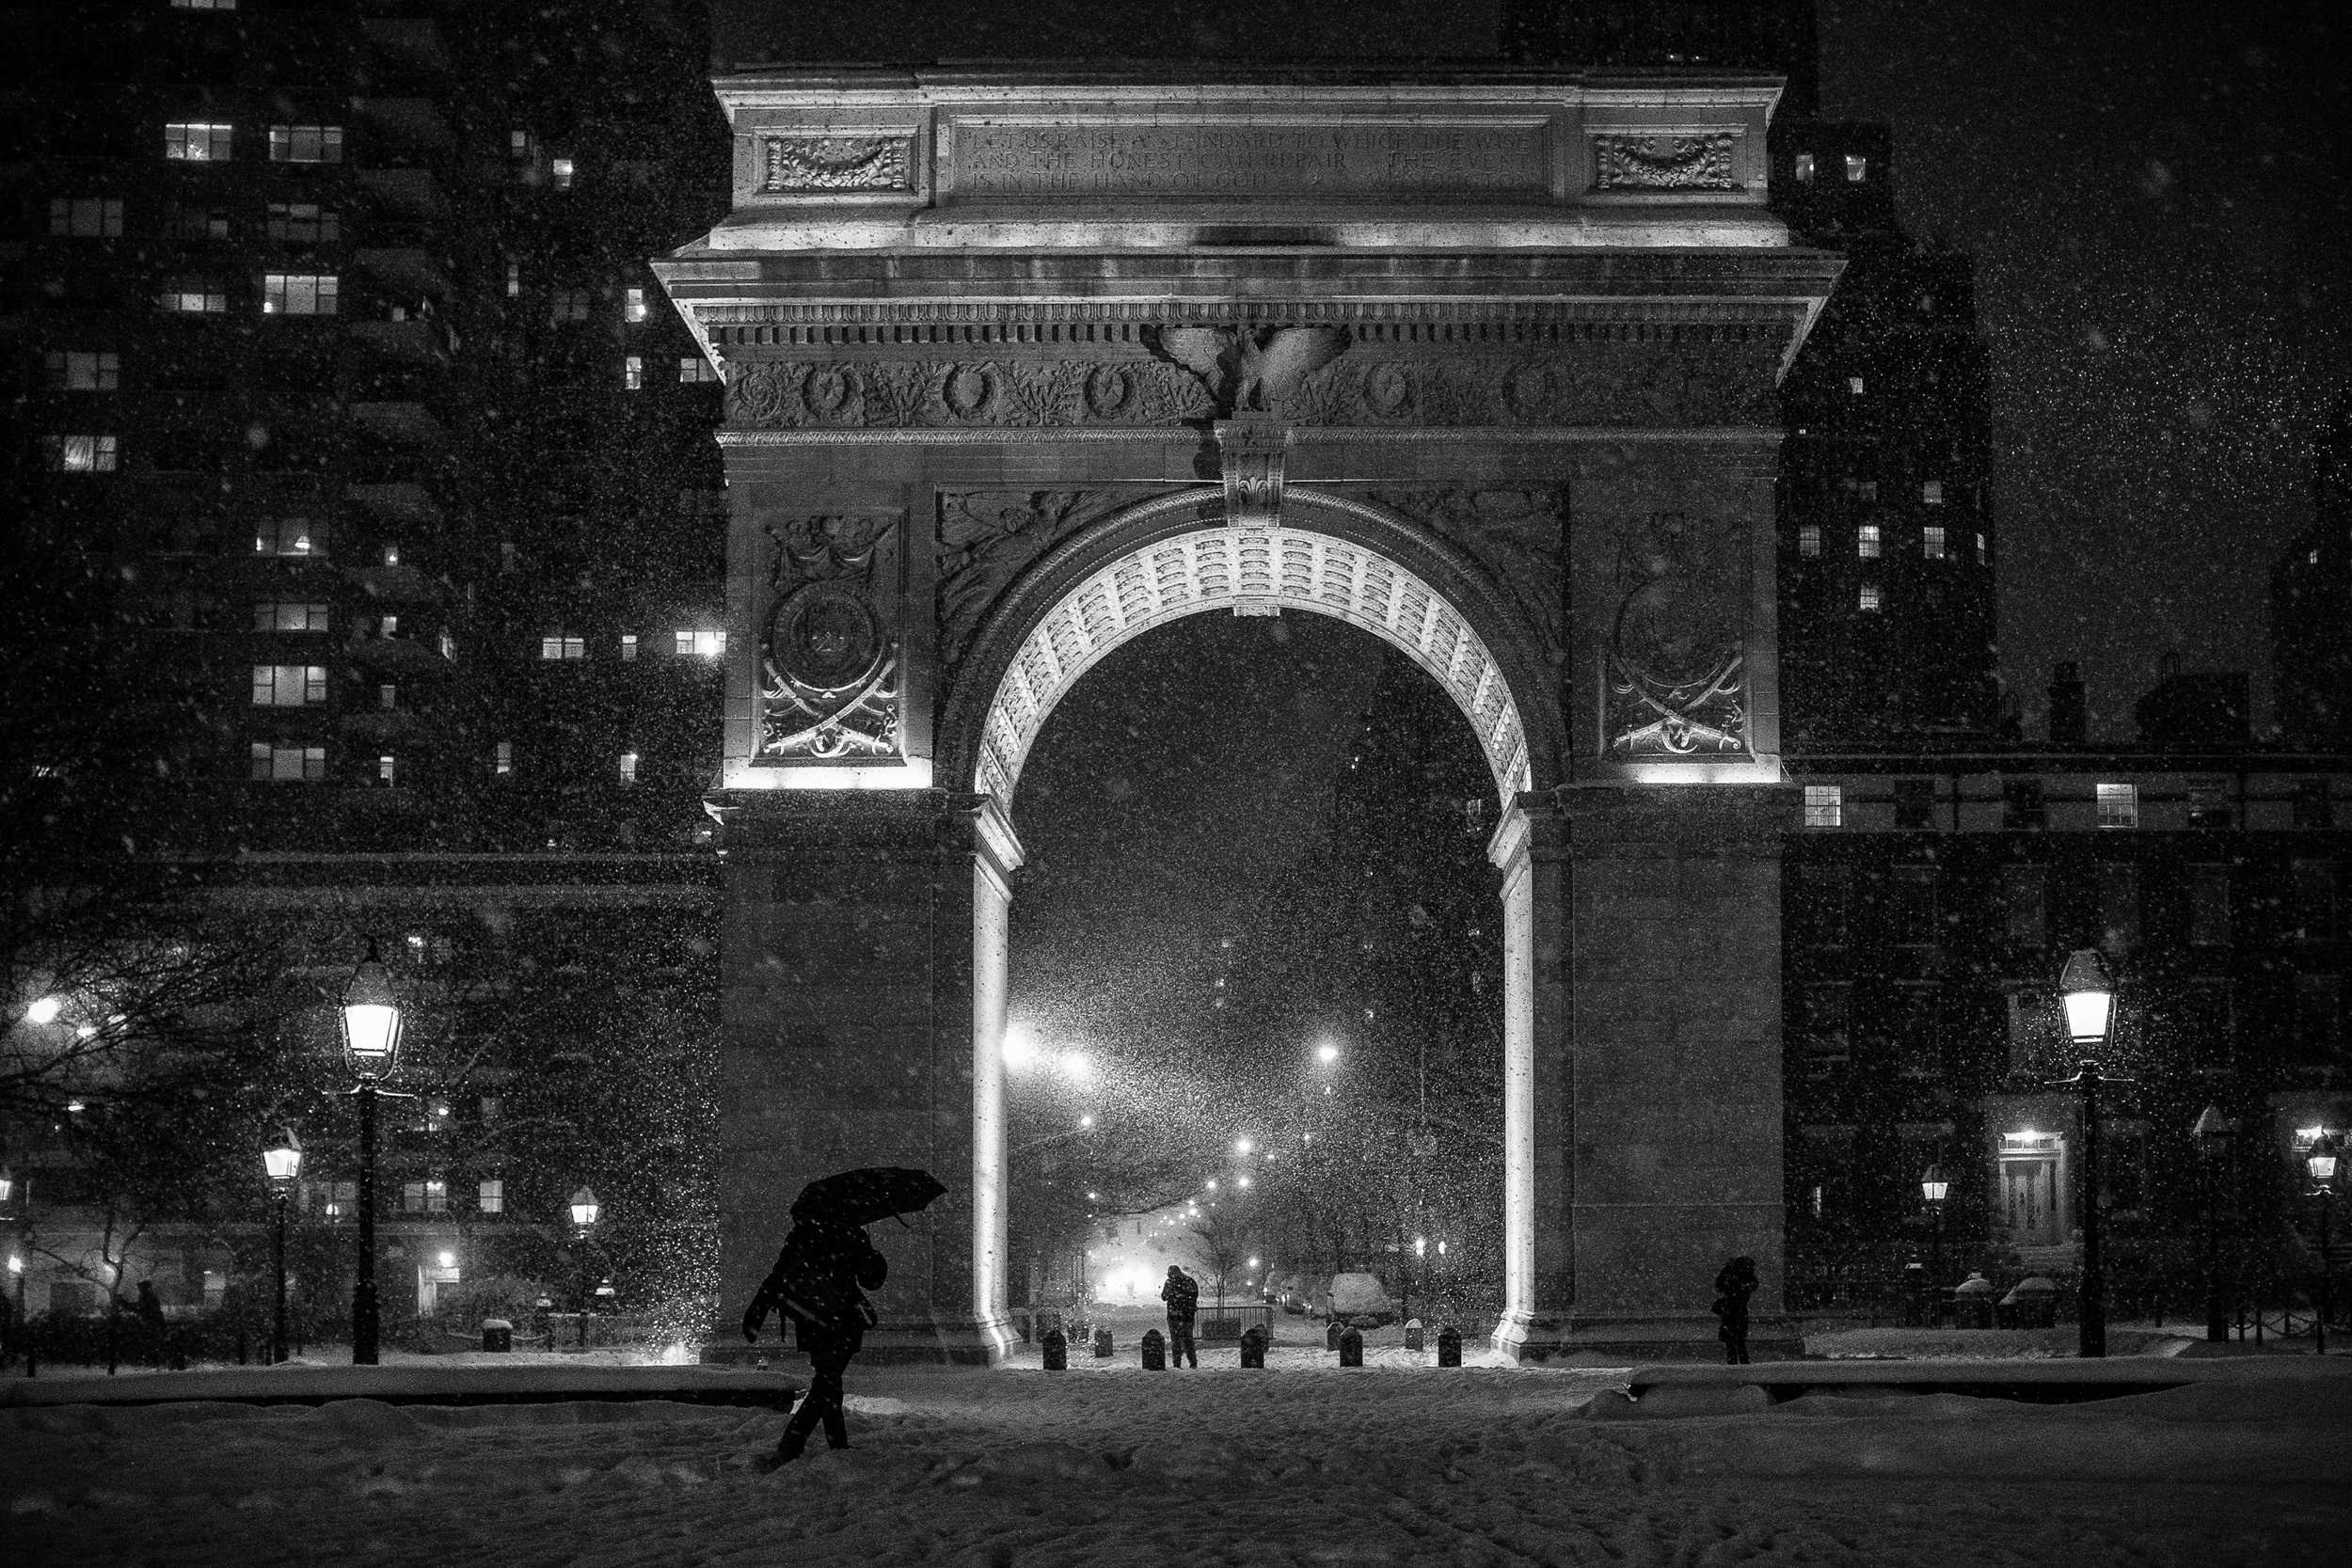 Also the arch at Washington Square Park